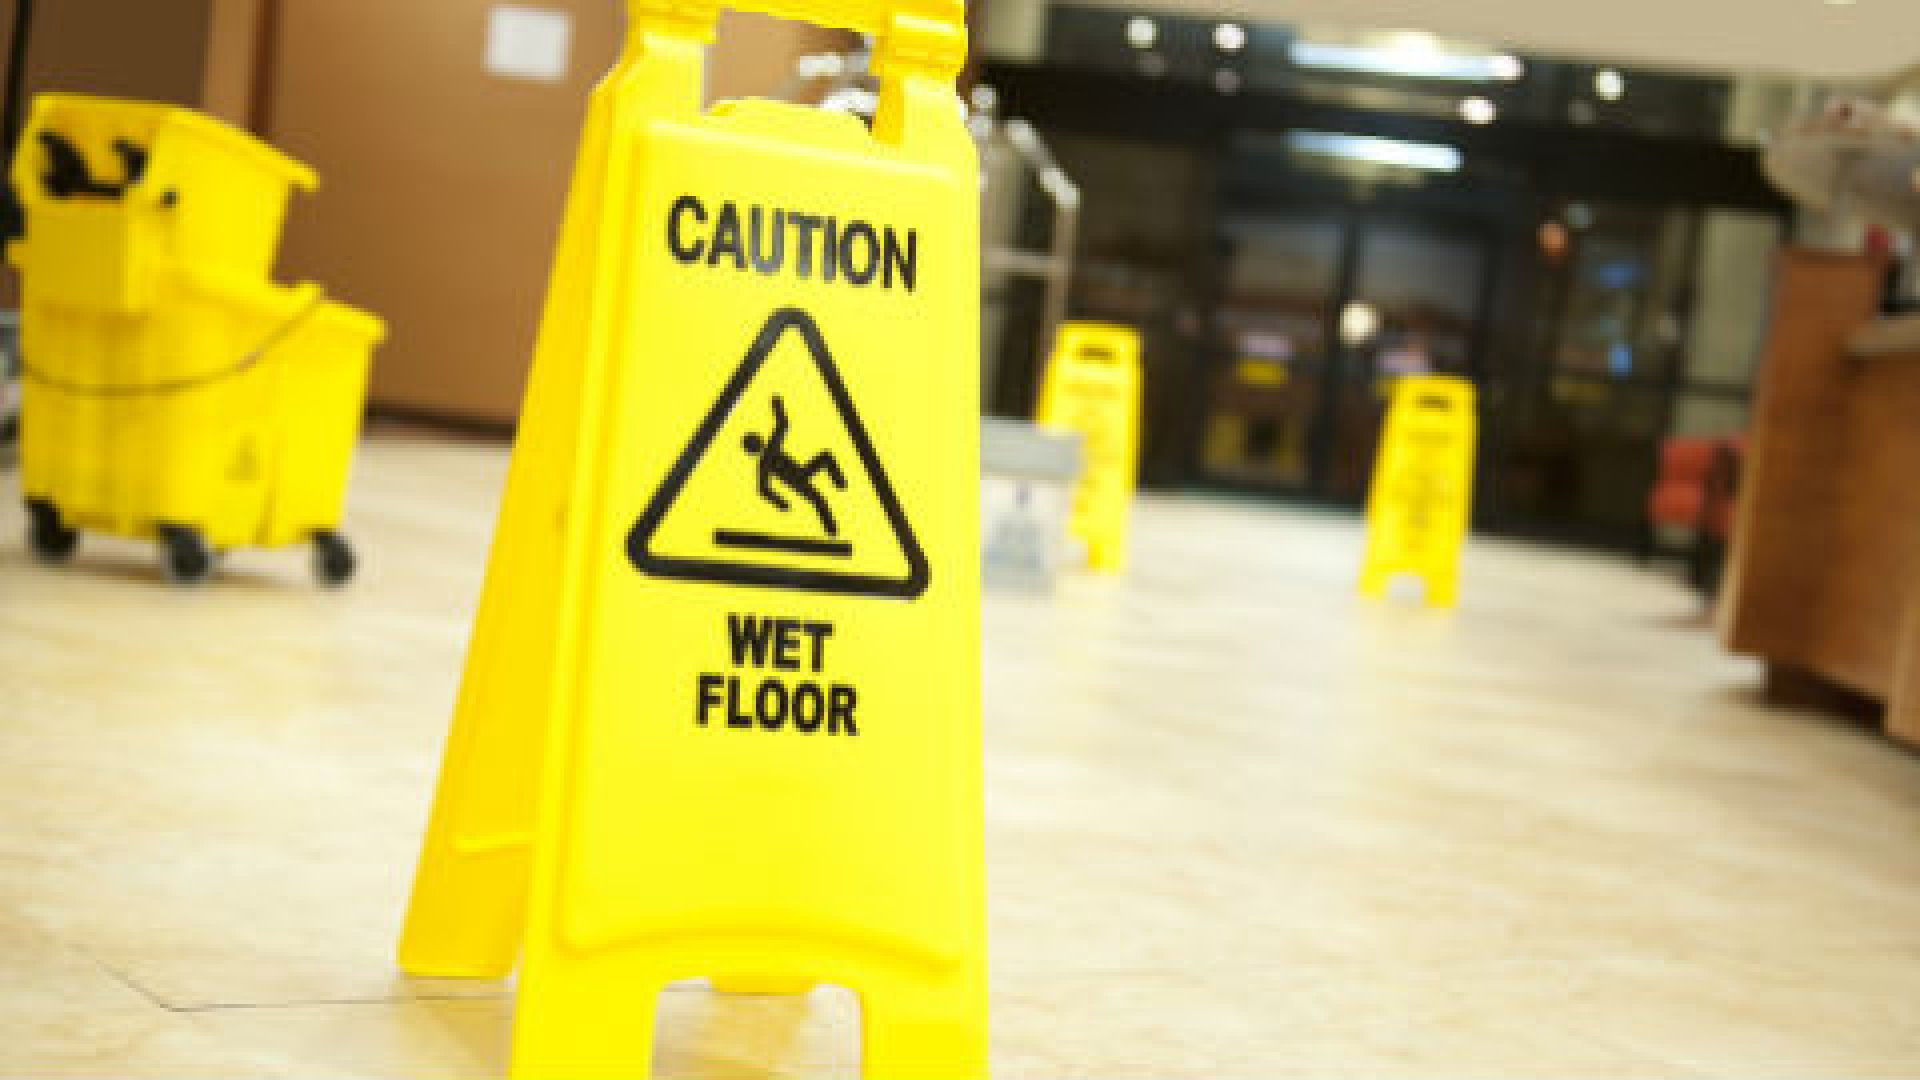 What You Can Learn About Job Satisfaction From a Janitor